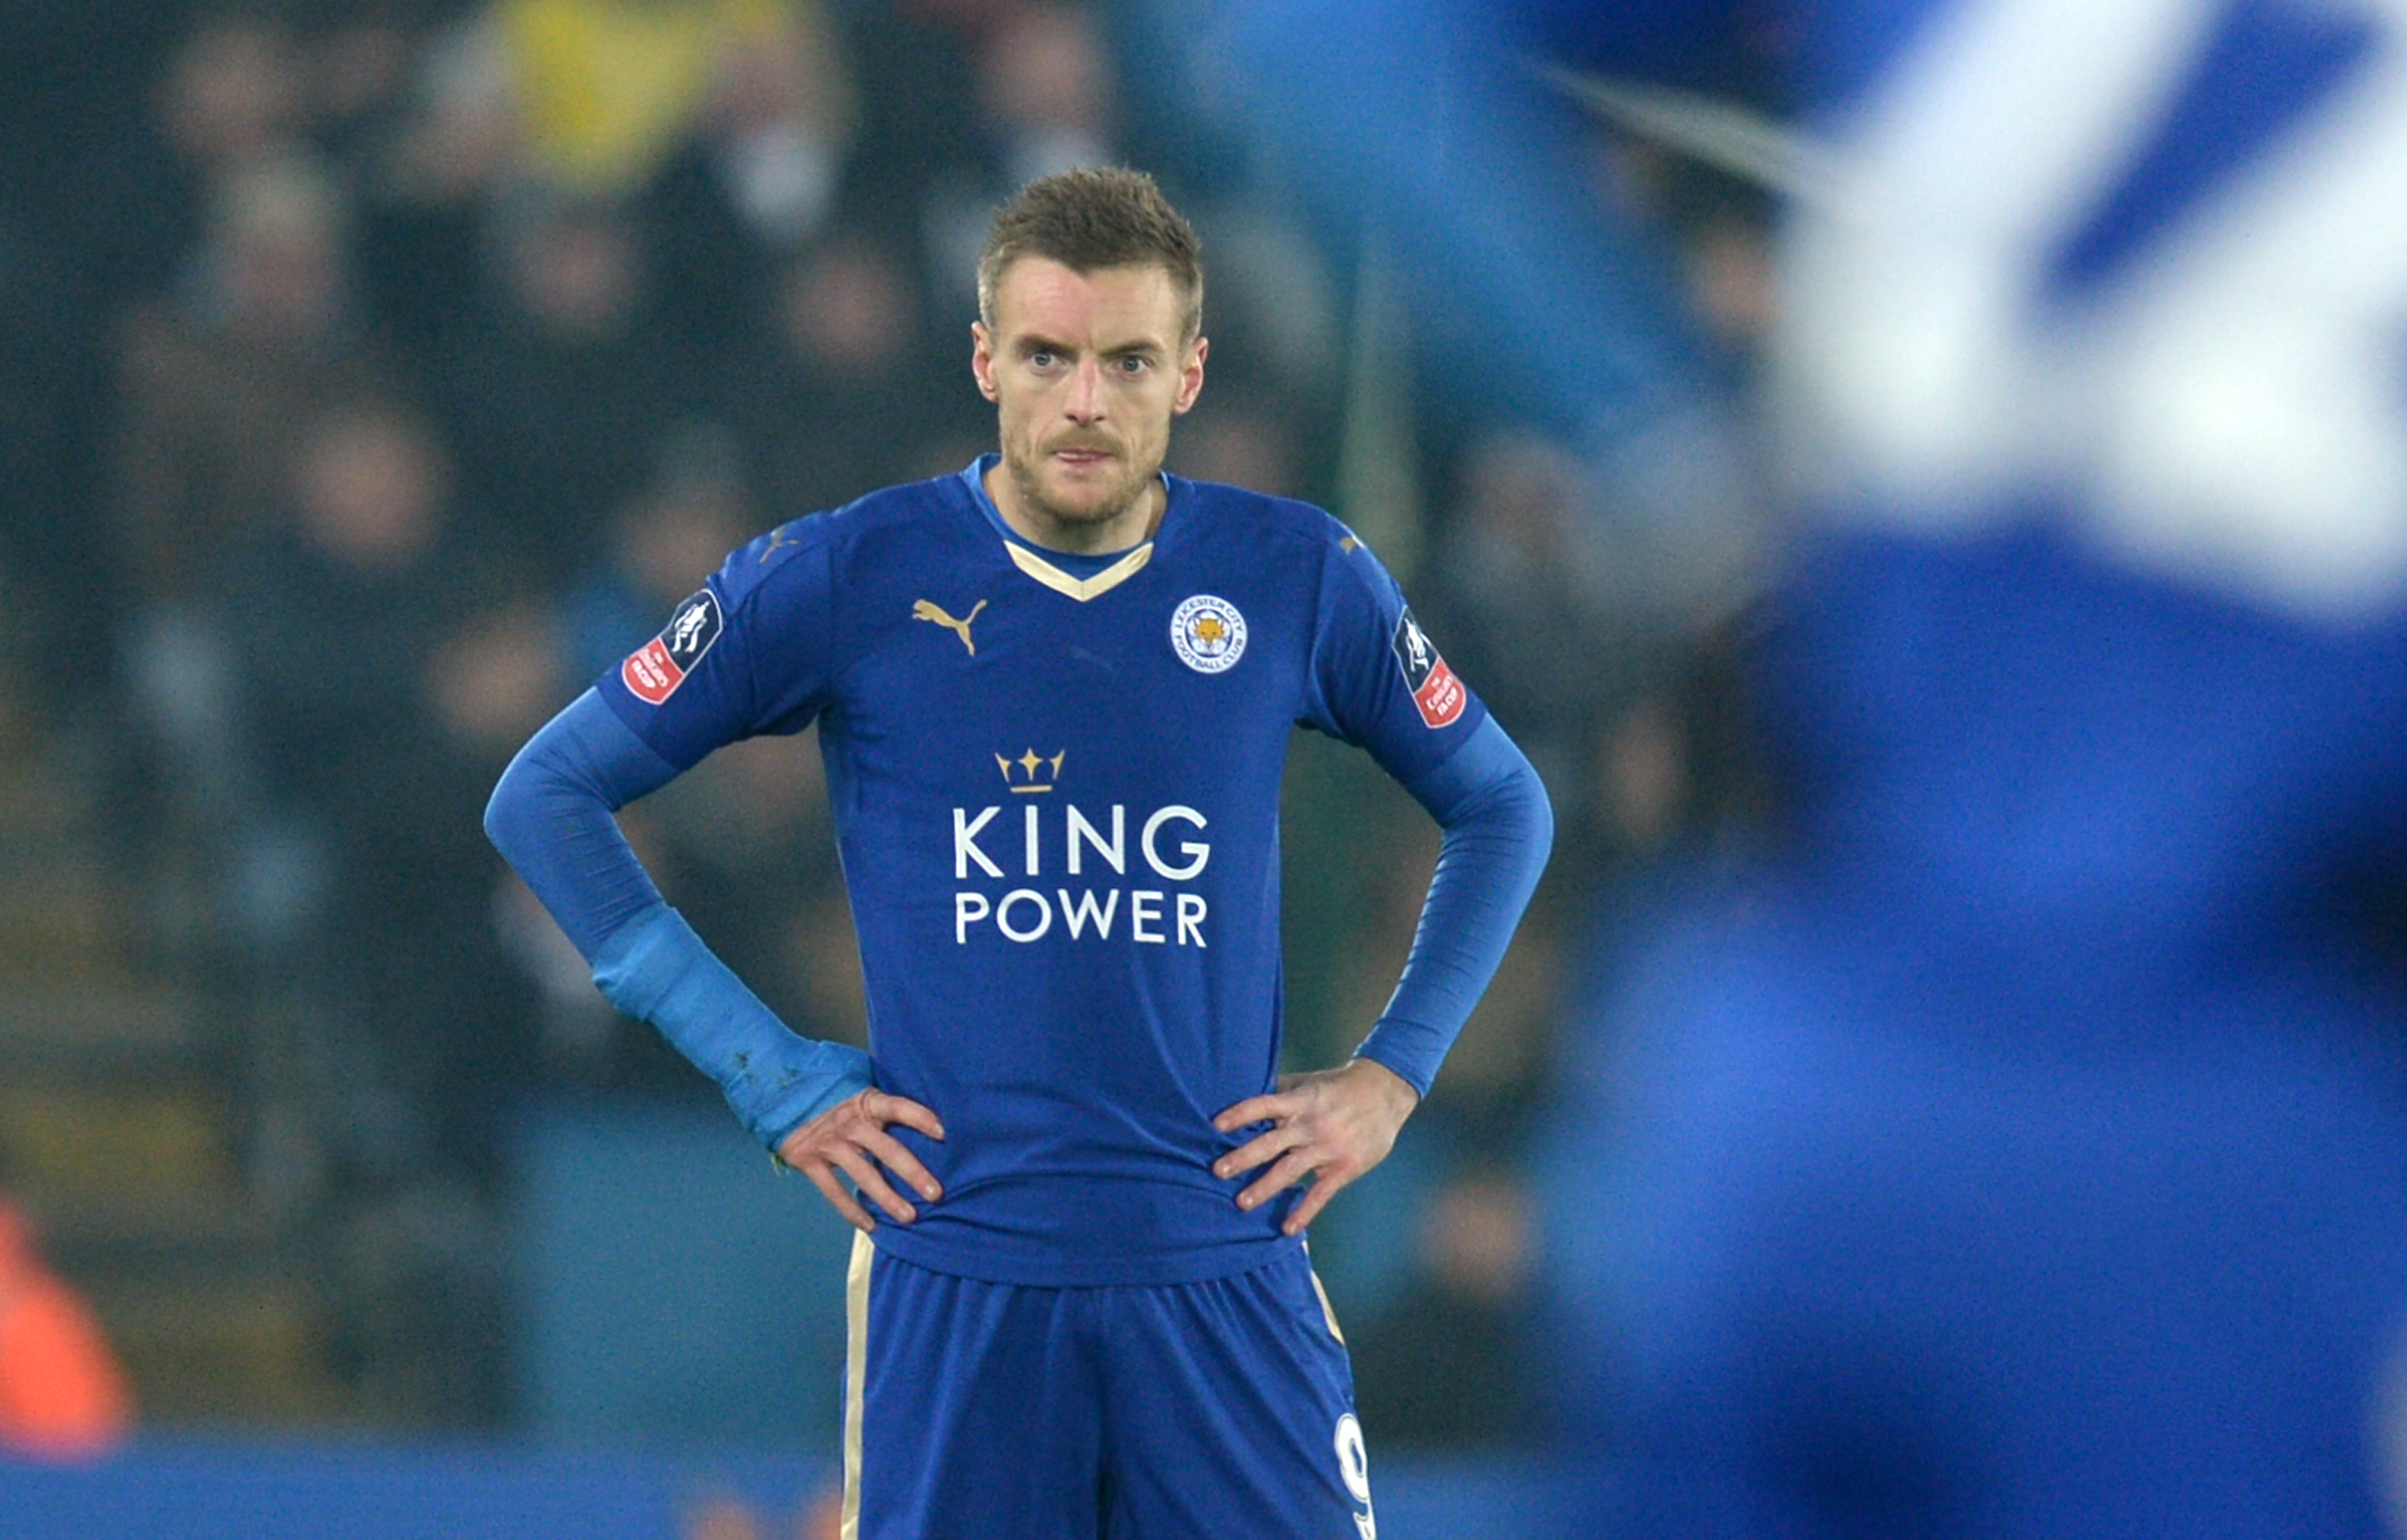 Liverpool , Liverpool Leicester, Liverpool lineup, Leicester lineup, Liverpool Leicester lineup, Liverpool stream, online, channel, when, time, watch, free, live, Liverpool free stream, Liverpool live online